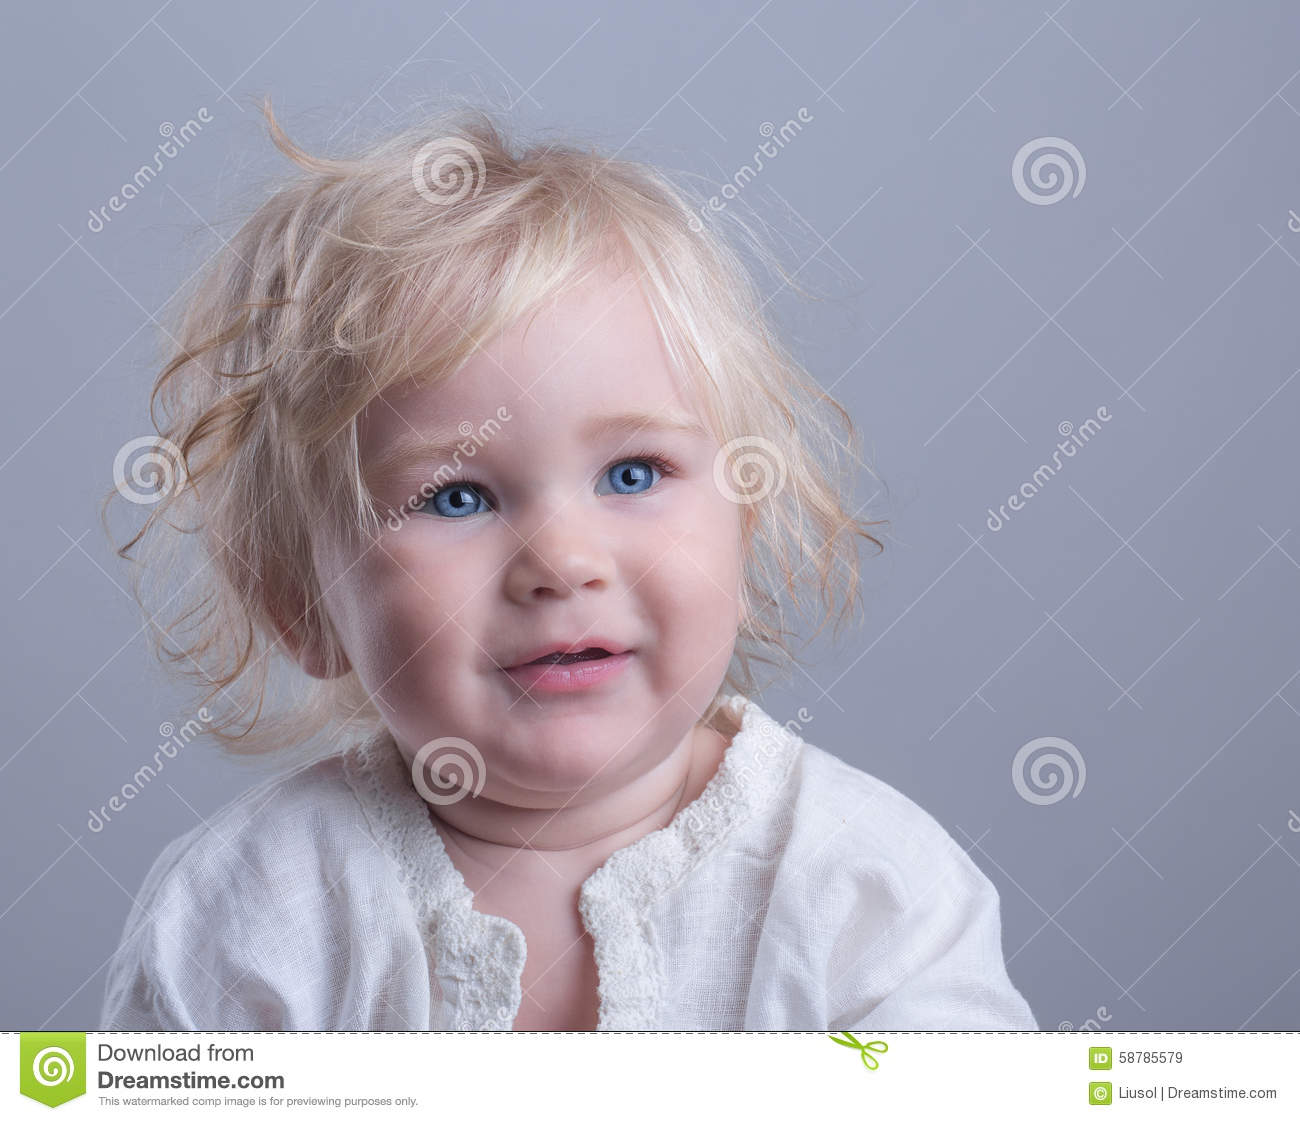 Happy Baby Blue Eyes Blonde Stock Photo - Image: 58785579